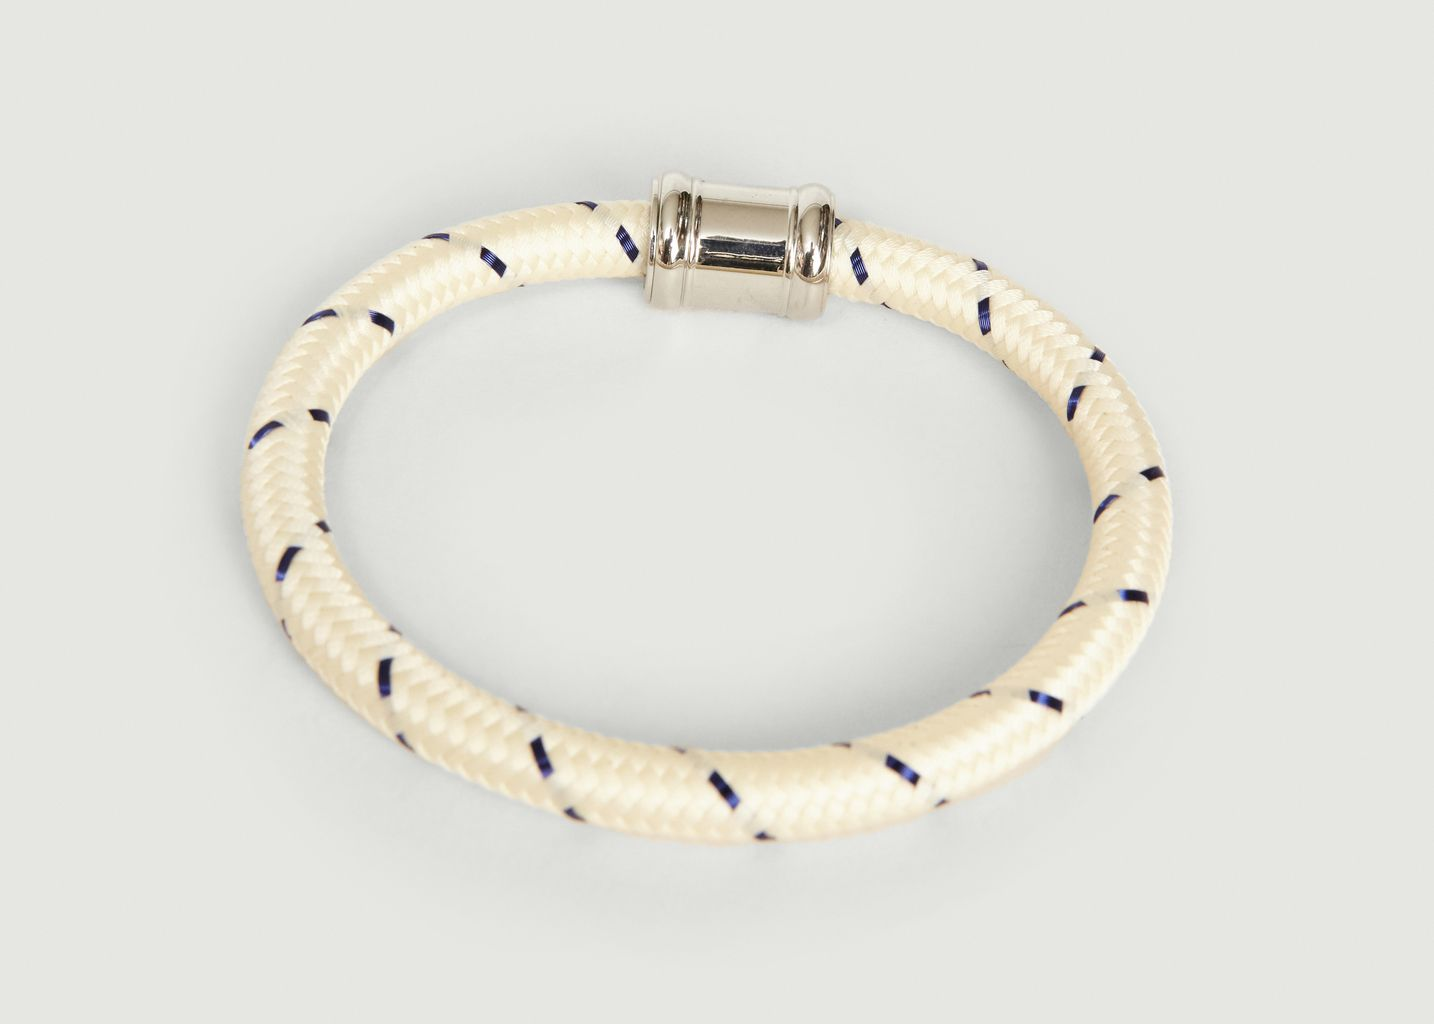 Bracelet Casing Single Rope - Miansai